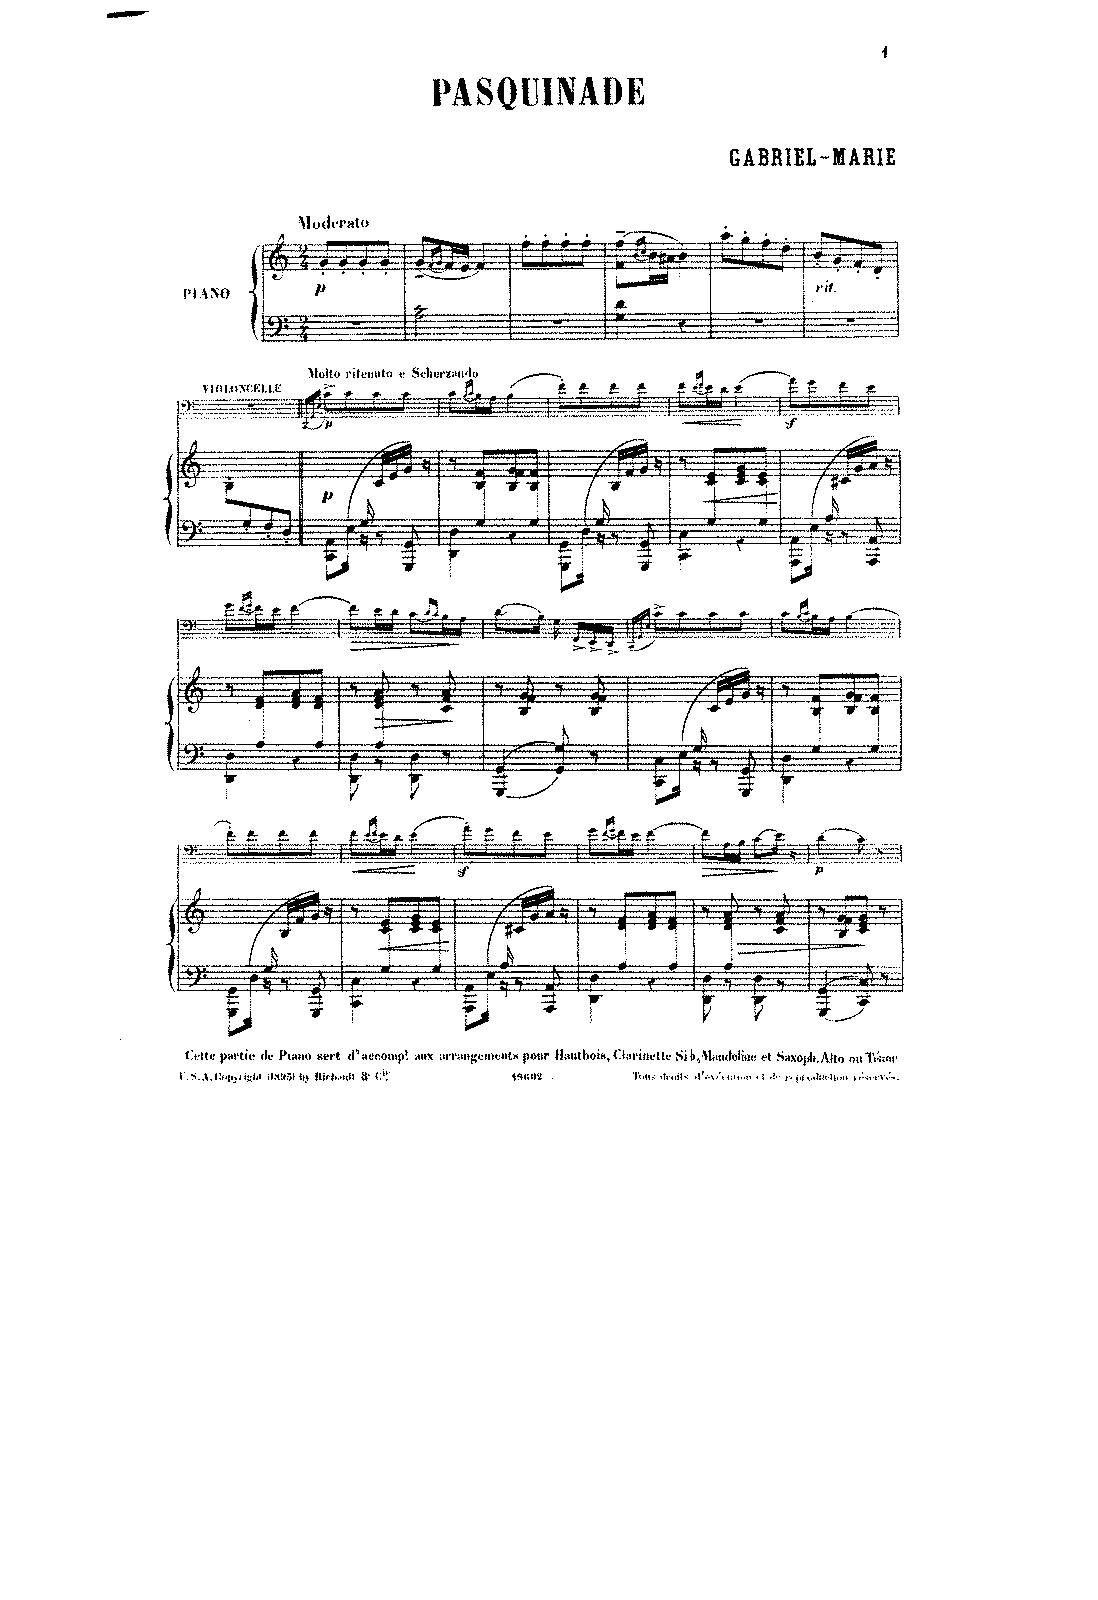 PMLP143144-Marie - Pasquinade for Cello and Piano score.pdf